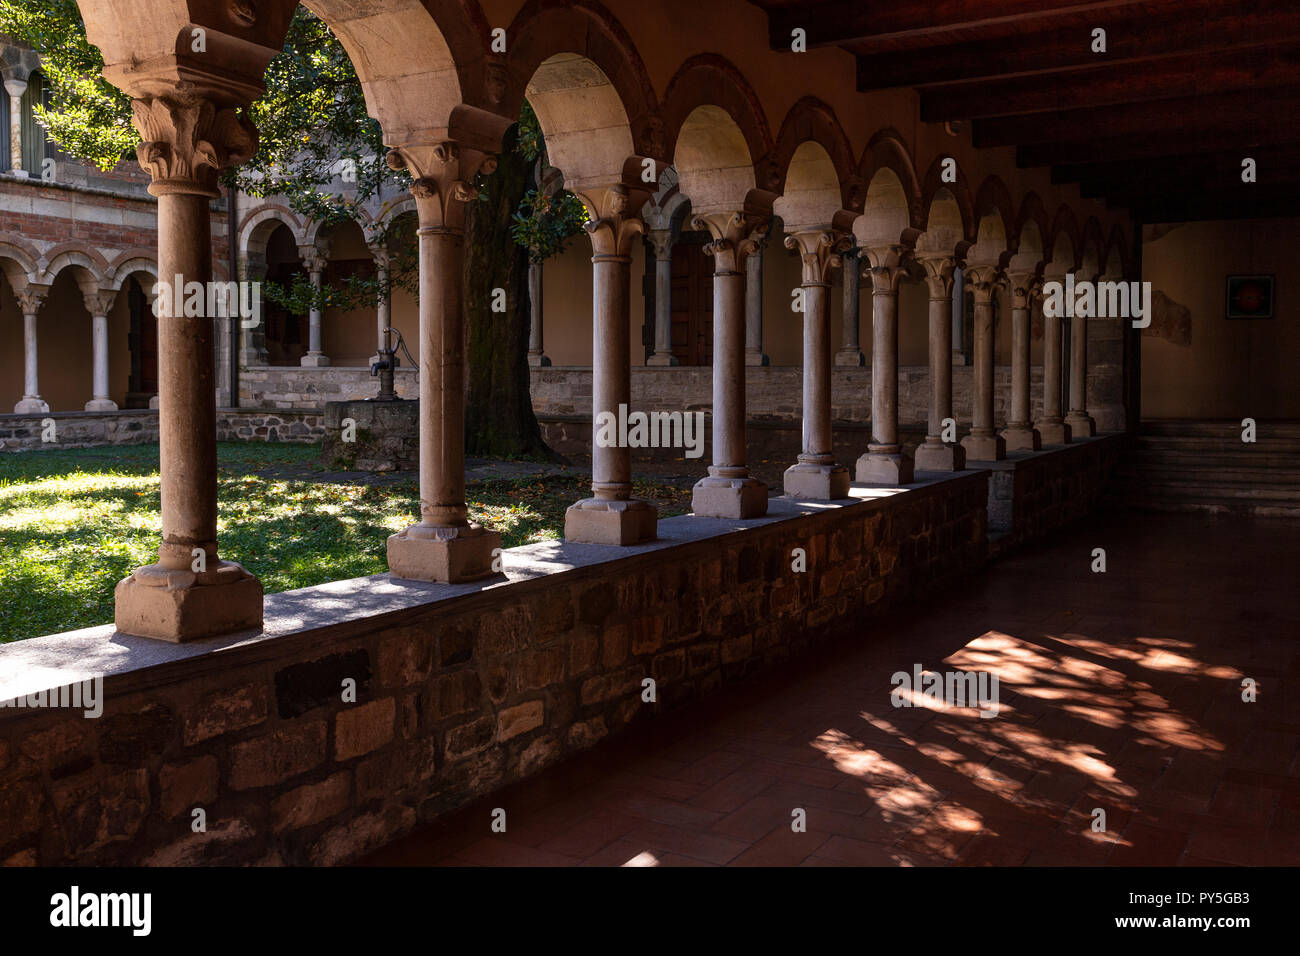 Cloisters in the monastary of Santa Maria di Piona on Lake Como, Italy Stock Photo